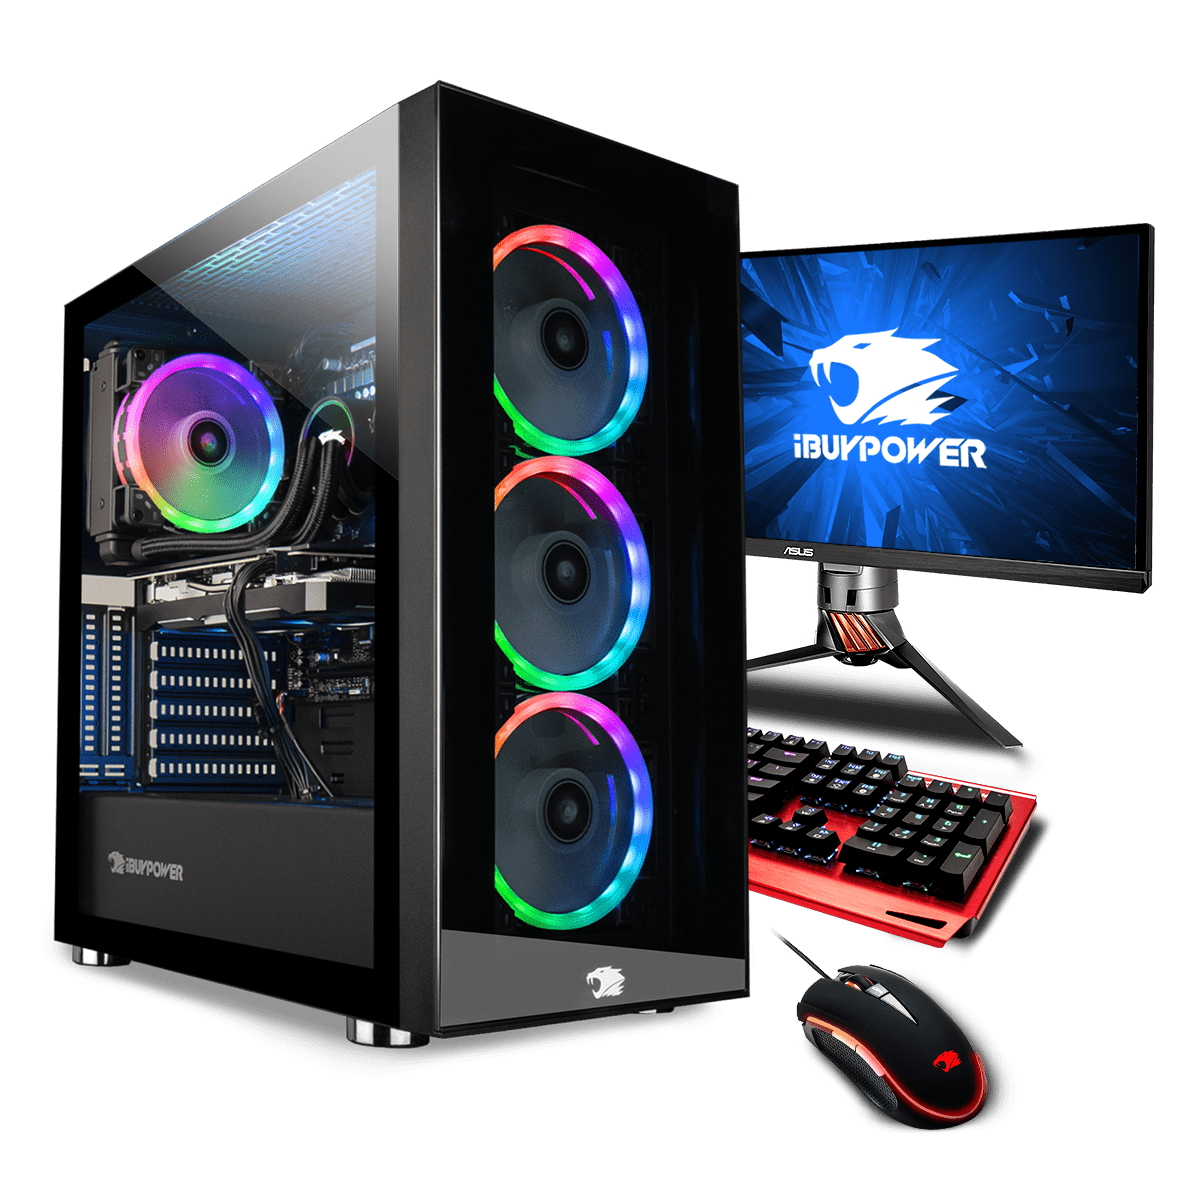 iBuyPower Ryzen 7 RTX2080 SUPER: Ryzen 7 3700X, 16GB DDR4, 512GB PCIe SSD, RTX 2080 Super, 750W PSU, 240mm Cooling, No OS @ $1349.95 + F/S